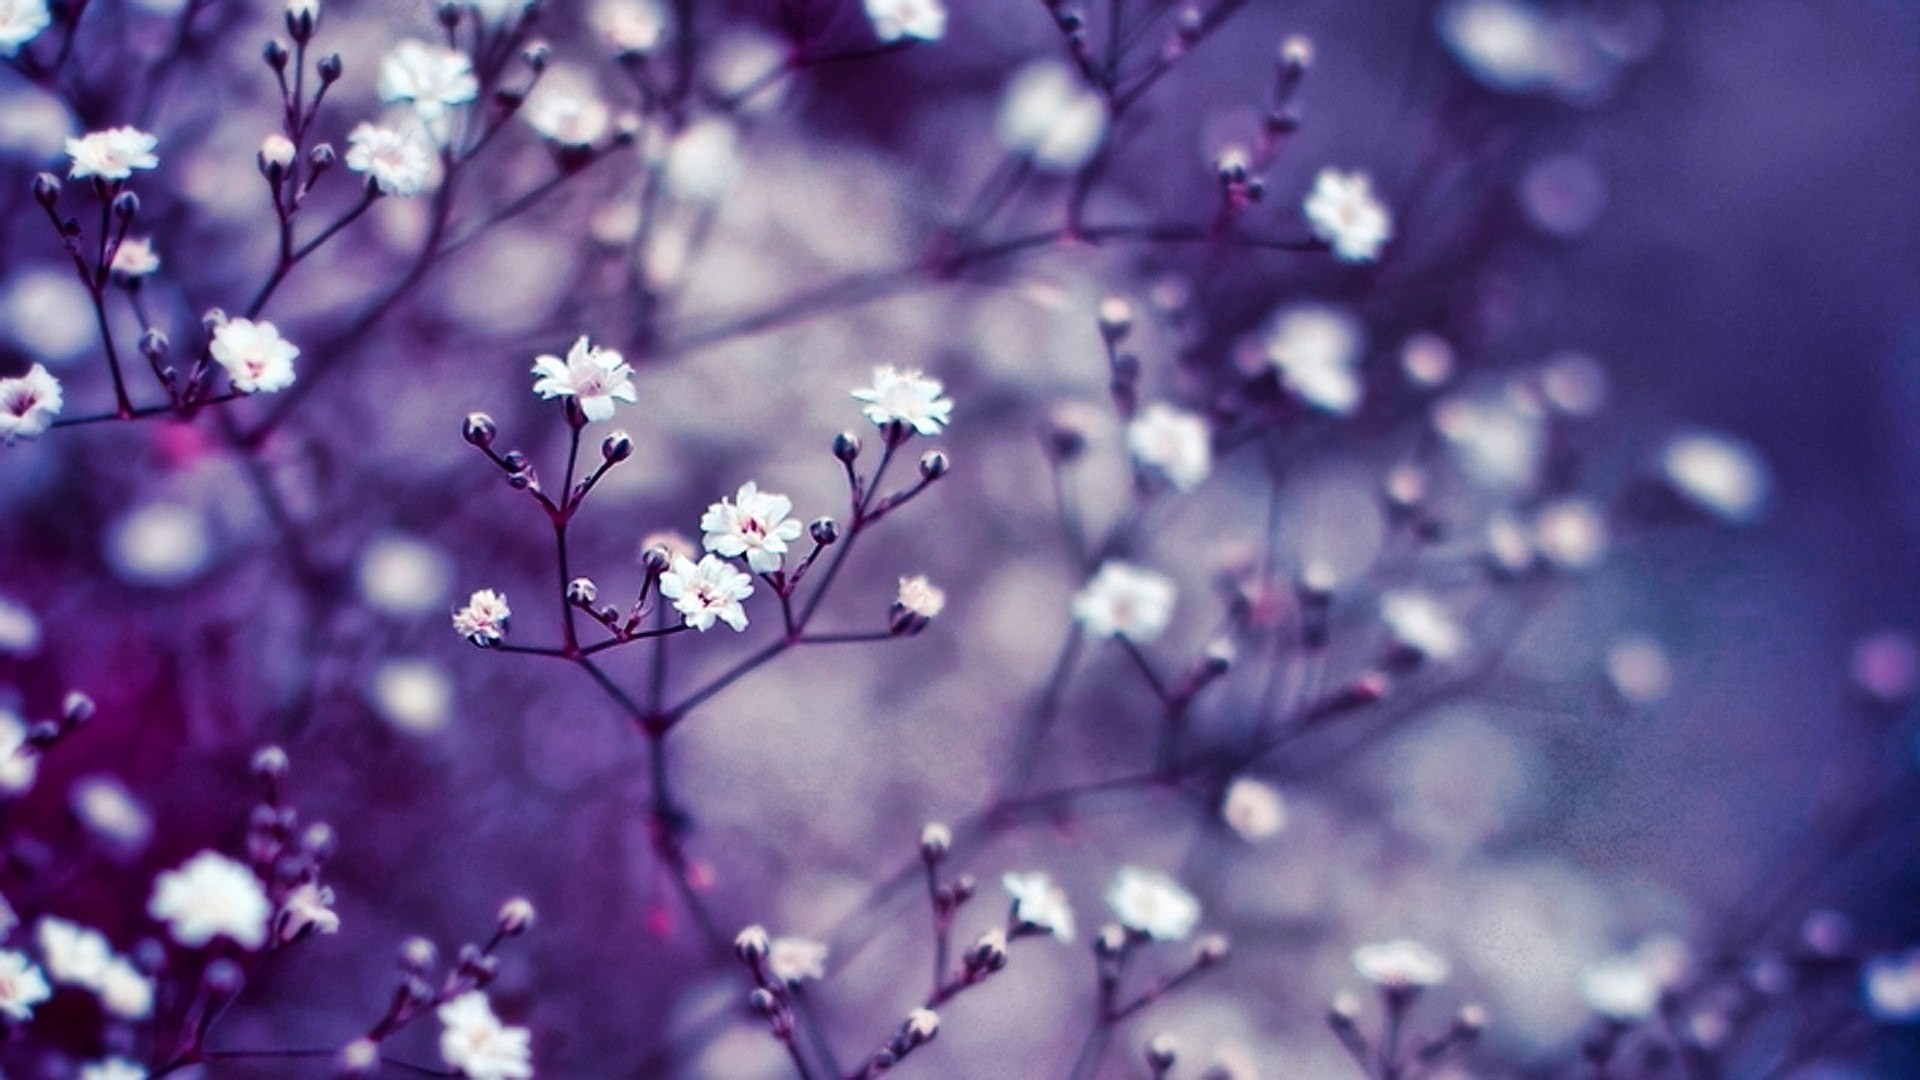 Flowers Images Hd Wallpaper